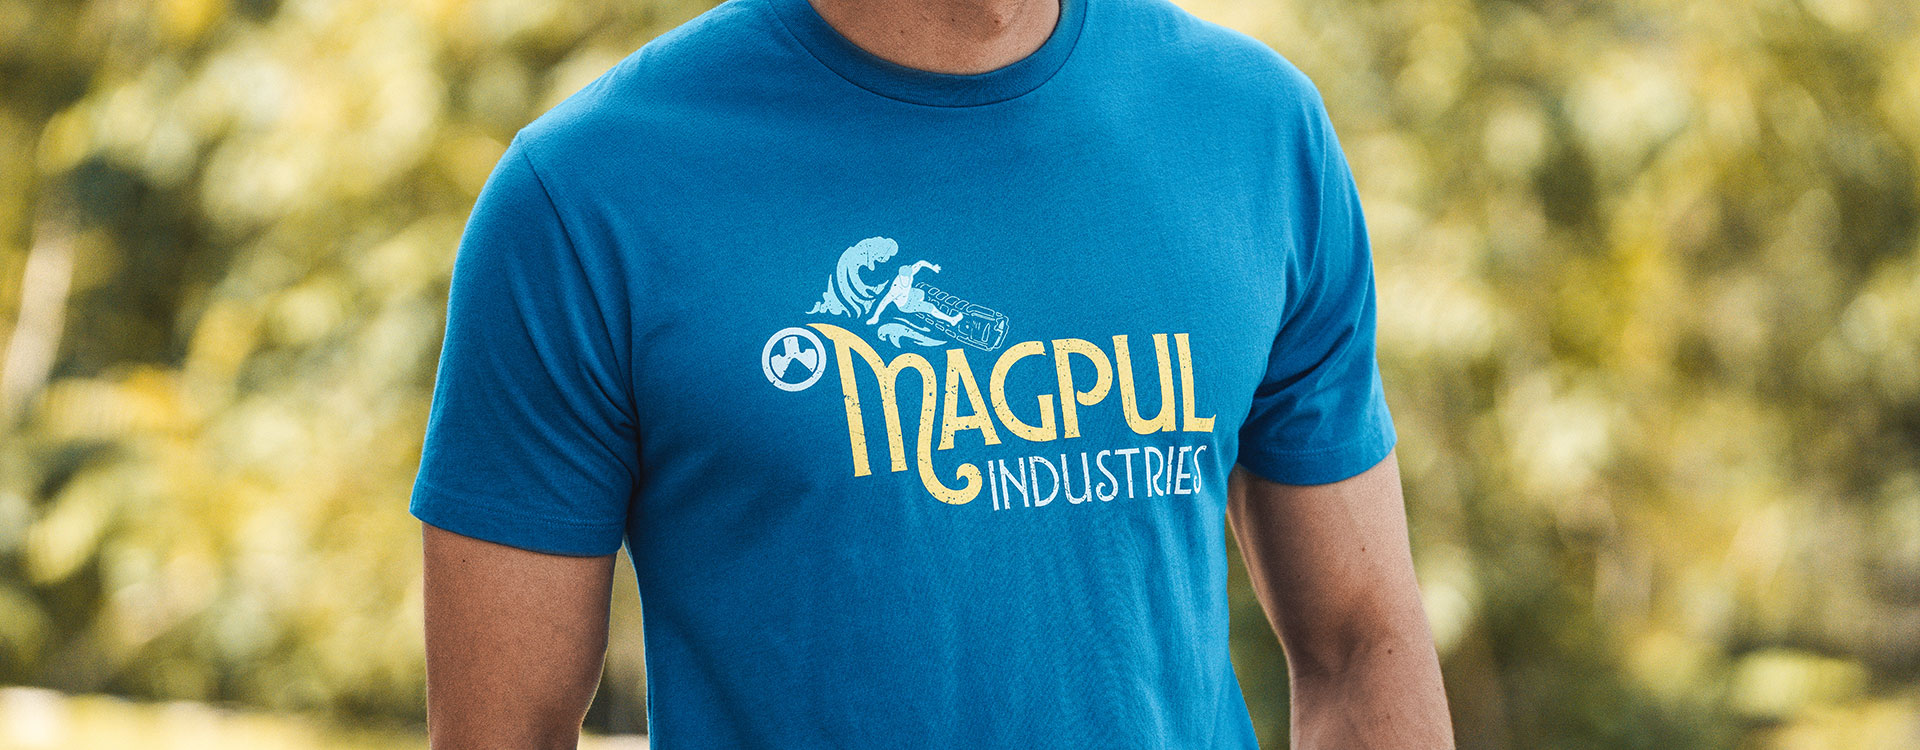 Magpul Hang 30 Blend T-Shirt with graphic of man riding a PMAG surf board worn by man outdoors